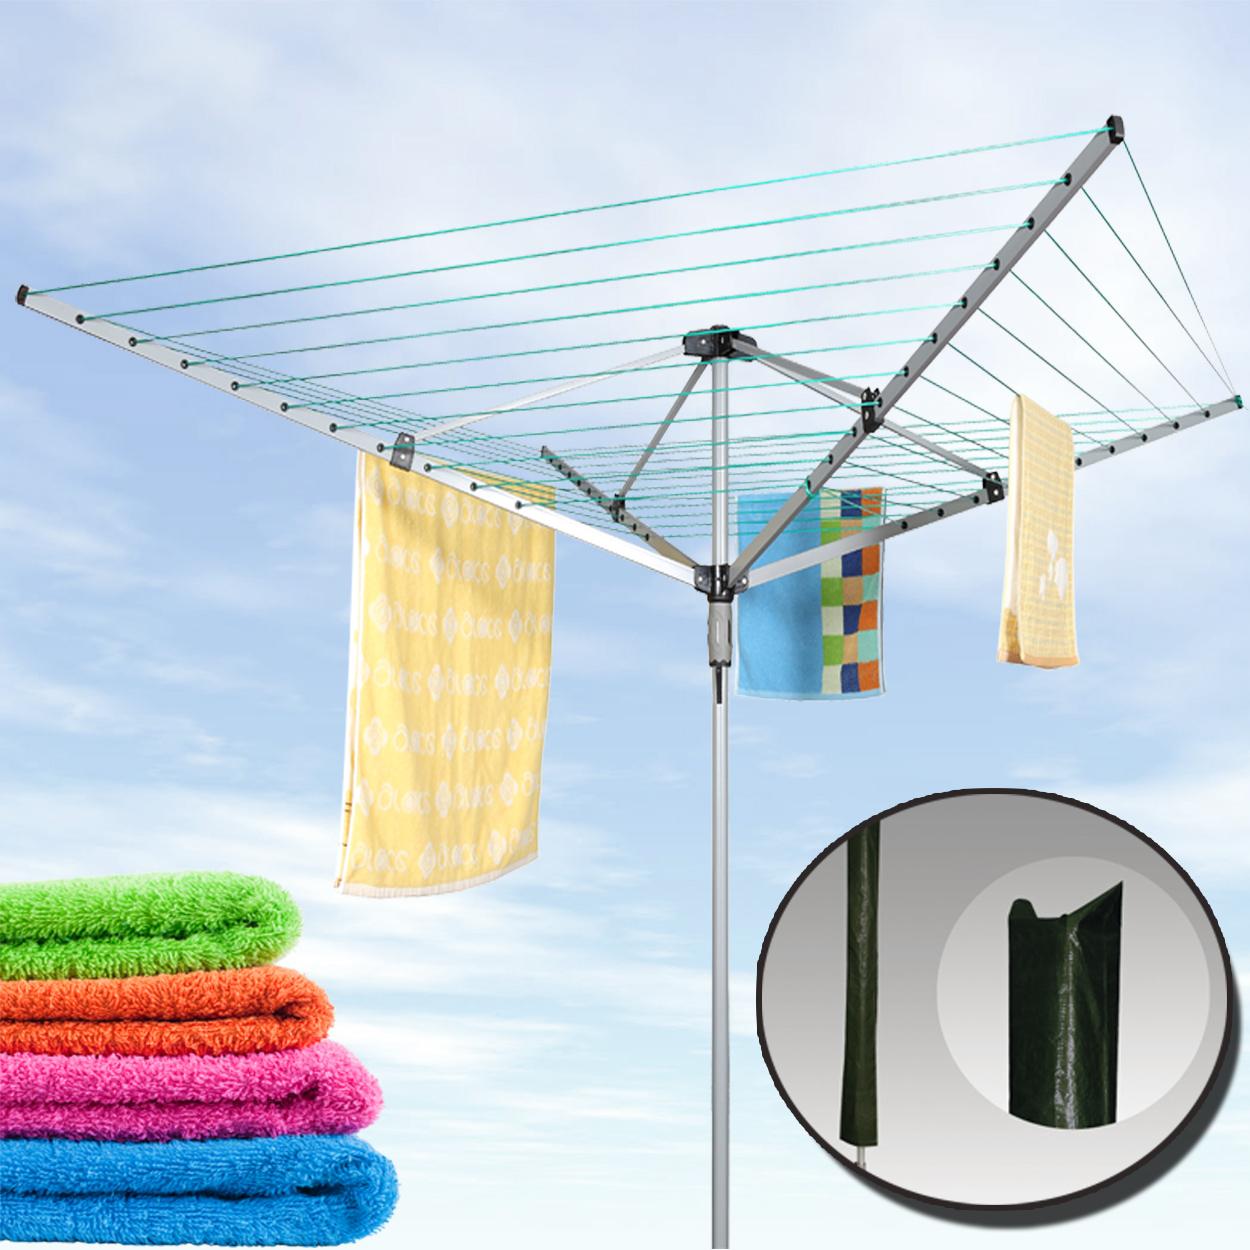 NEW 4 ARM ROTARY GARDEN WASHING LINE CLOTHES AIRER DRYER 50M FREE COVER